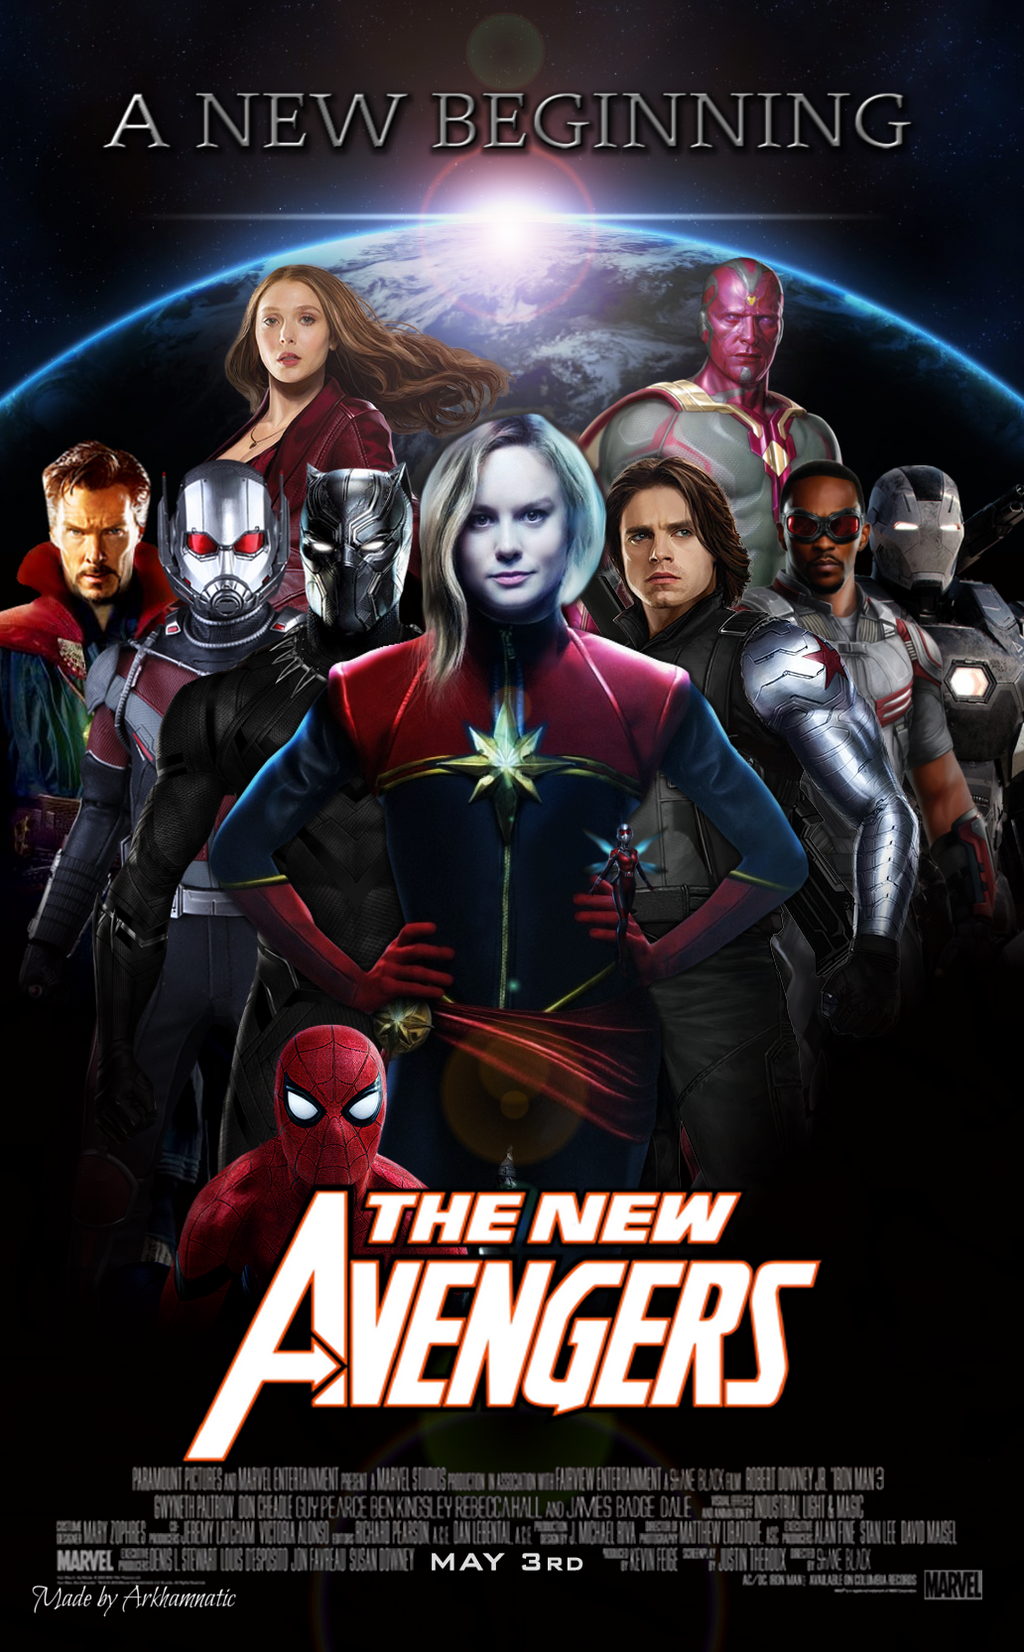 The New Avengers movie poster by ArkhamNatic on DeviantArt